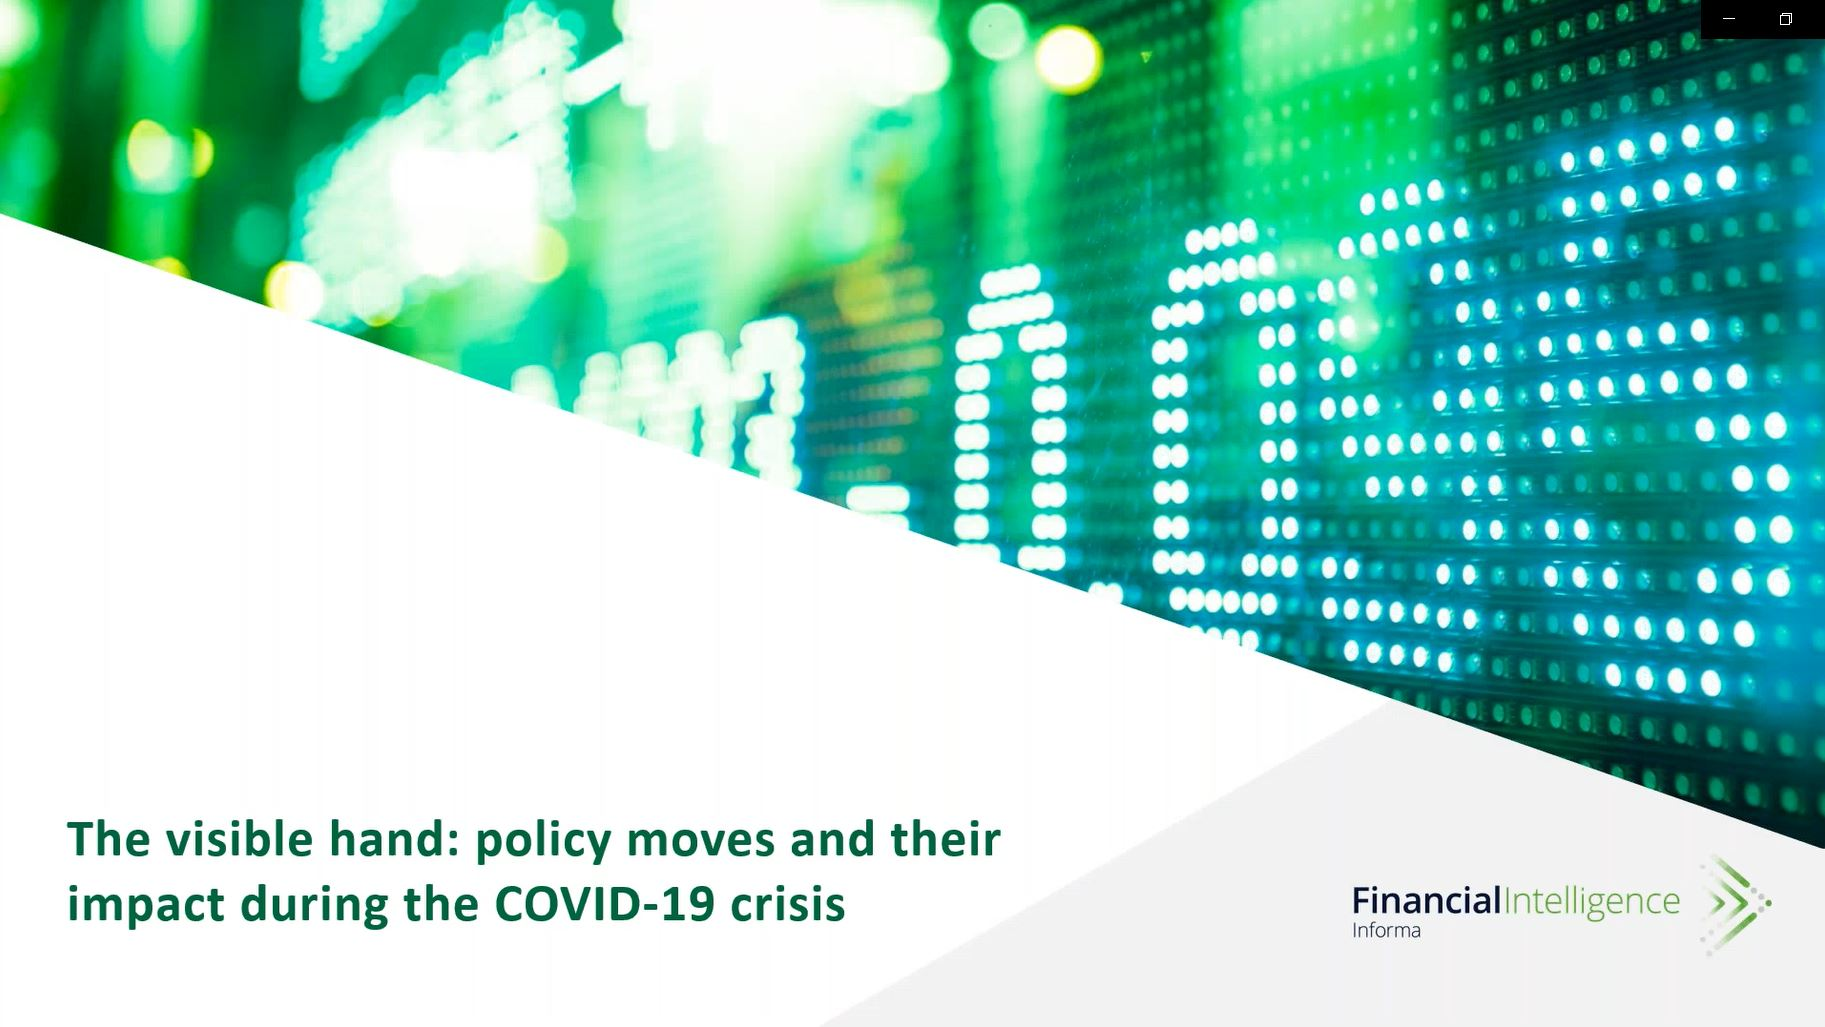 The visible hand: policy moves and their impact during the COVID-19 crisis